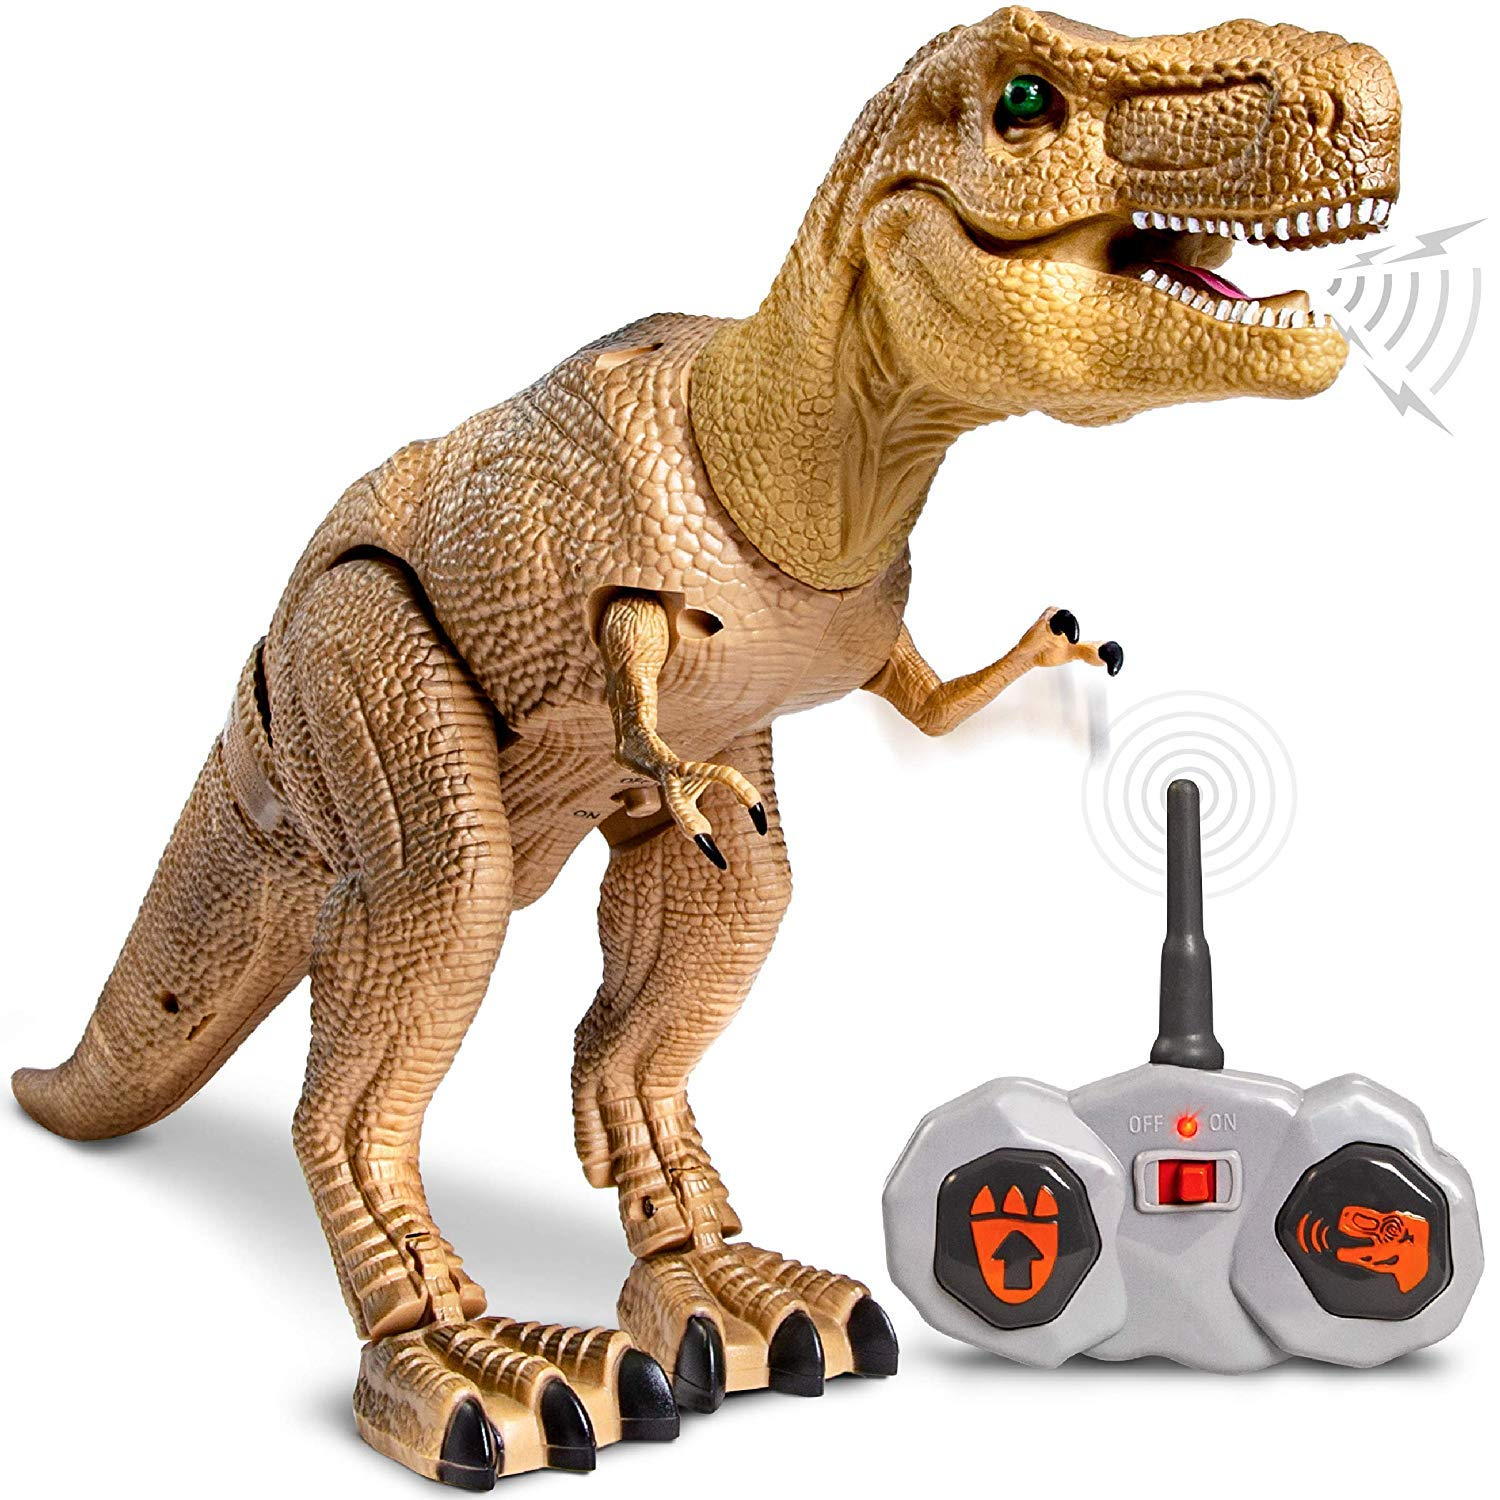 Discovery Kids Remote Control RC T Rex Dinosaur Electronic Toy Action Figure Moving & Walking Robot w/Roaring Sounds & Chomping Mouth, Realistic Plastic Model, Boys & Girls 6 Years Old+ by Discovery Kids (Image #1)